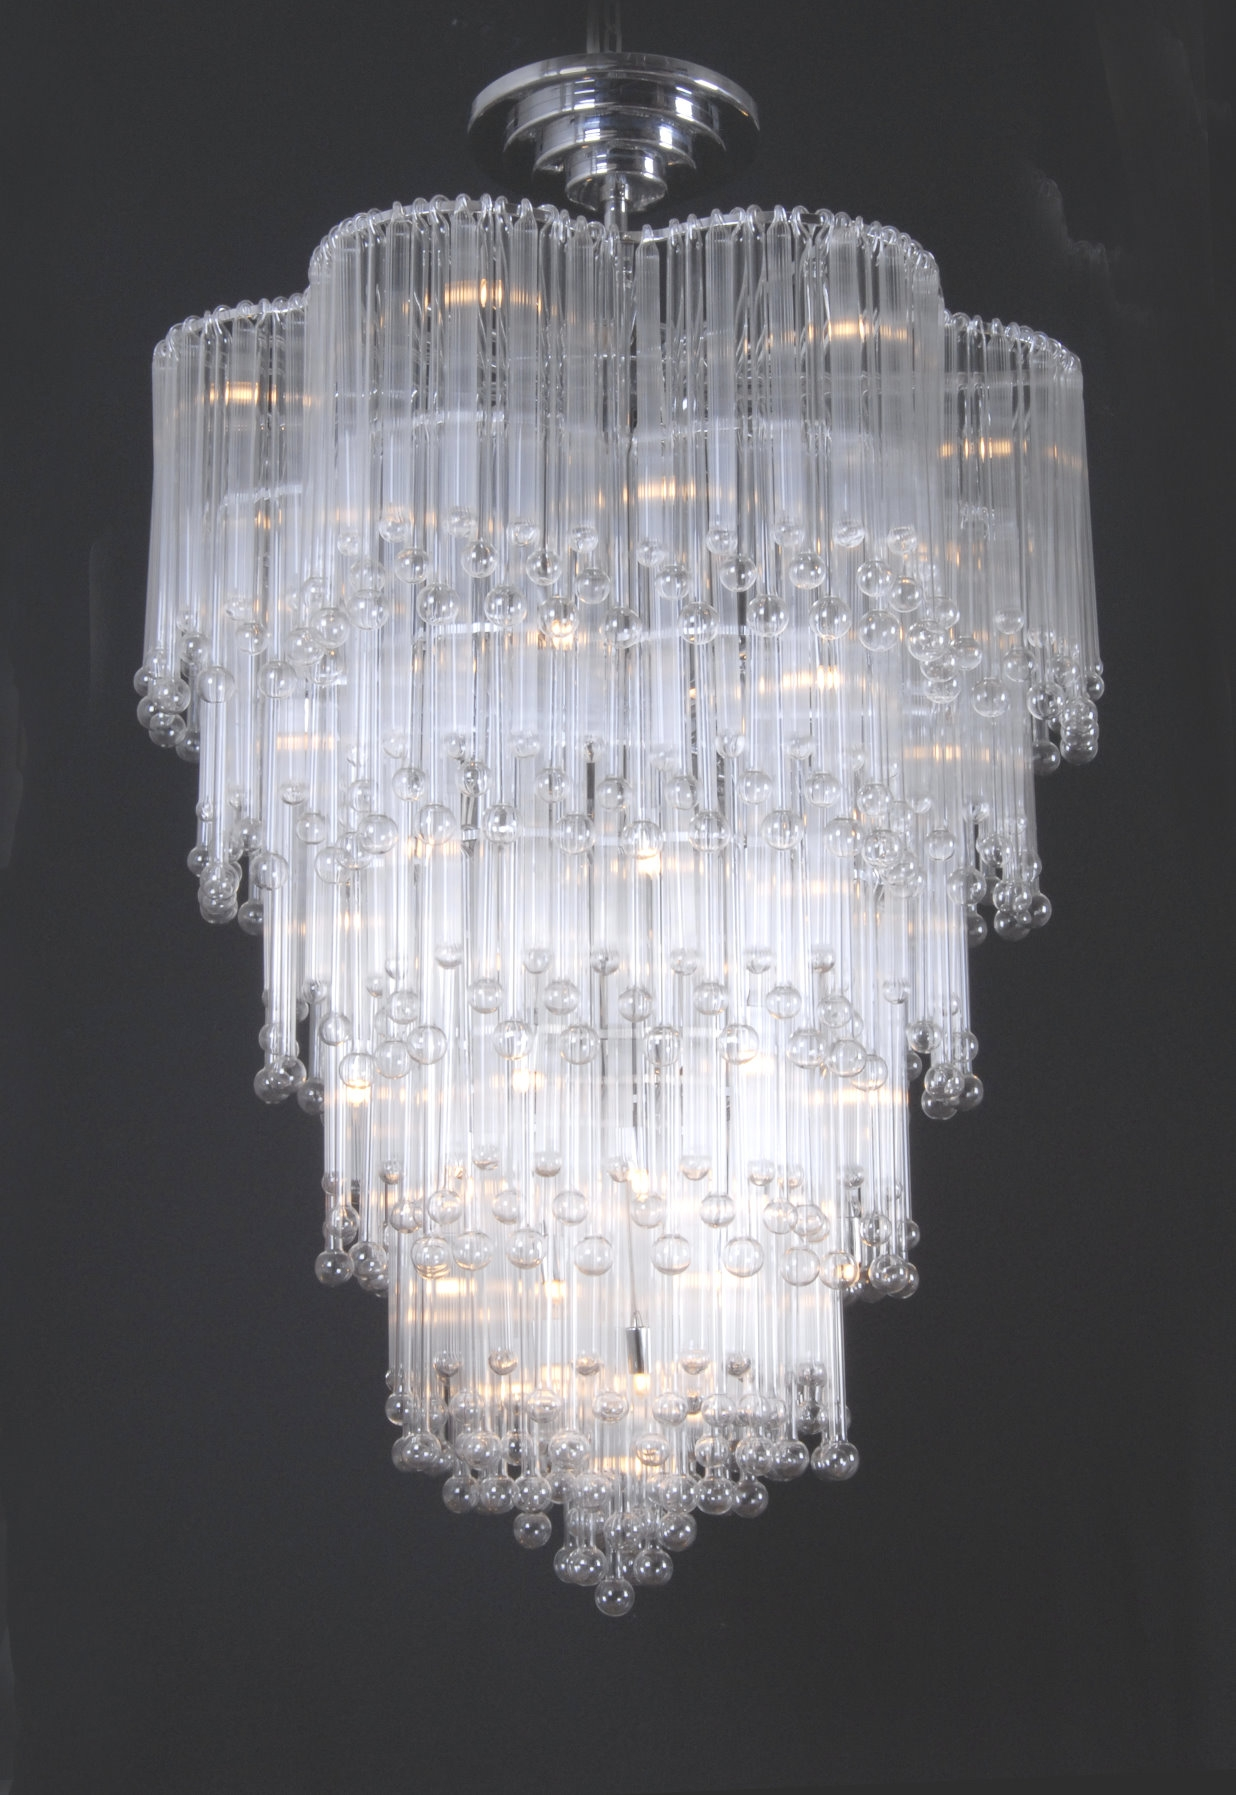 Chandelier Lamps Maxim Lighting Basix Inch 3 Light Floureon Intended For Modern Large Chandelier (Image 7 of 15)